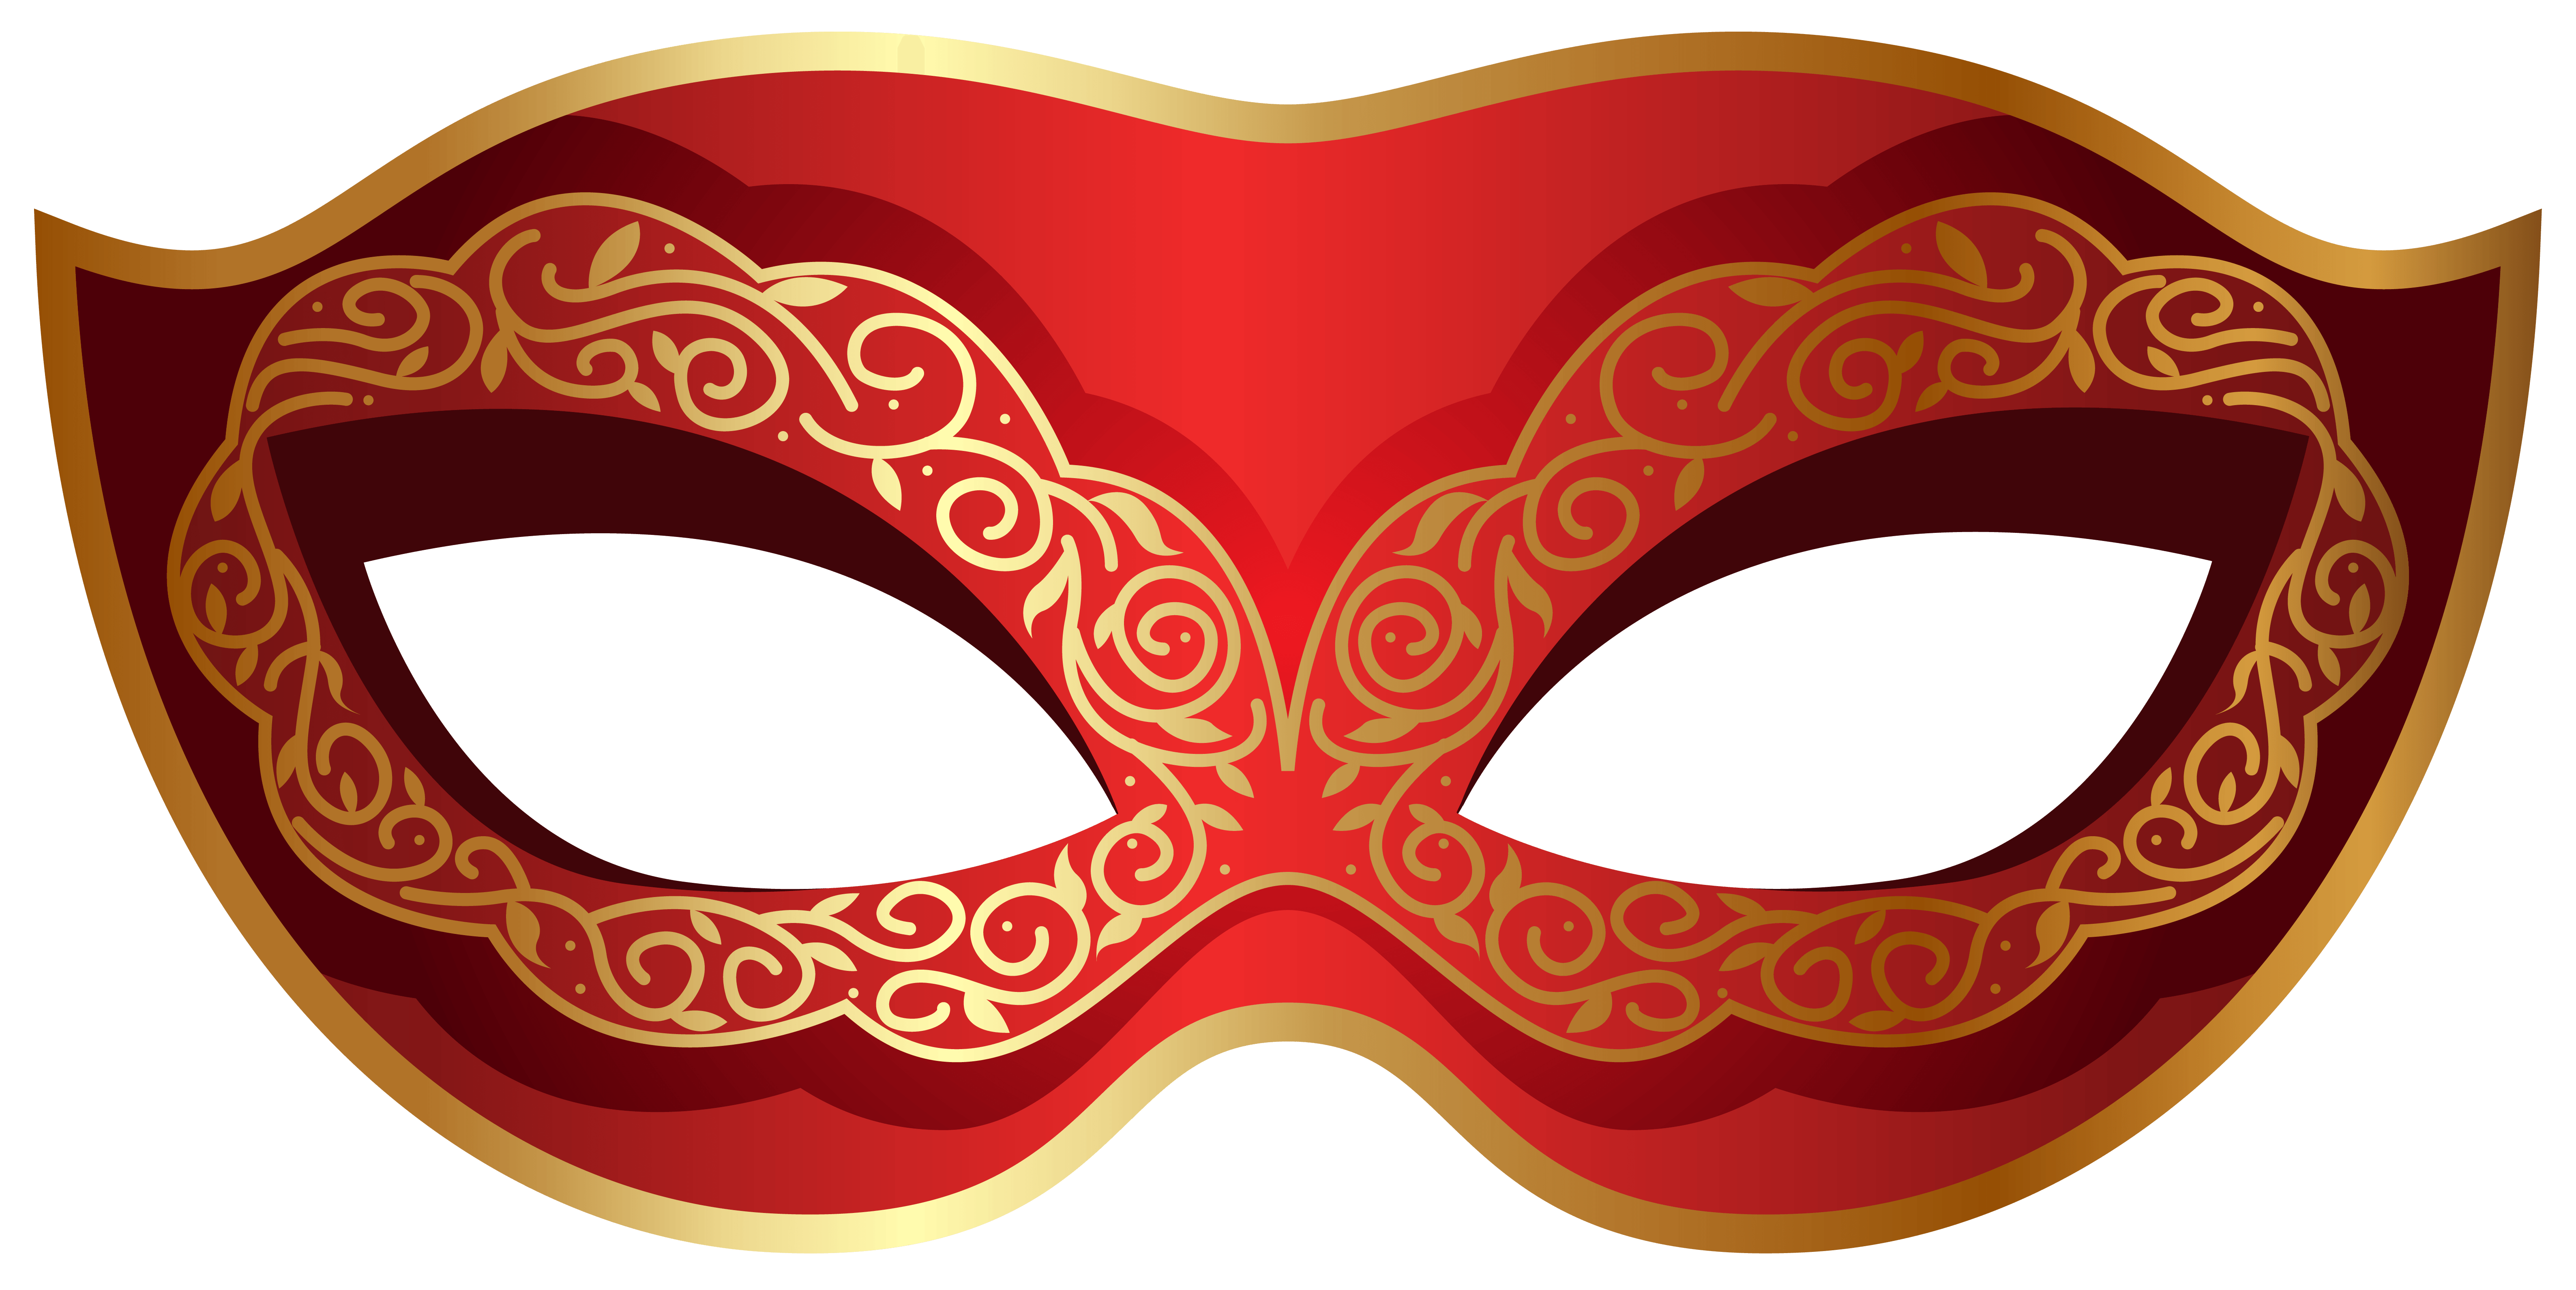 Masquerade clipart png. Collection of red